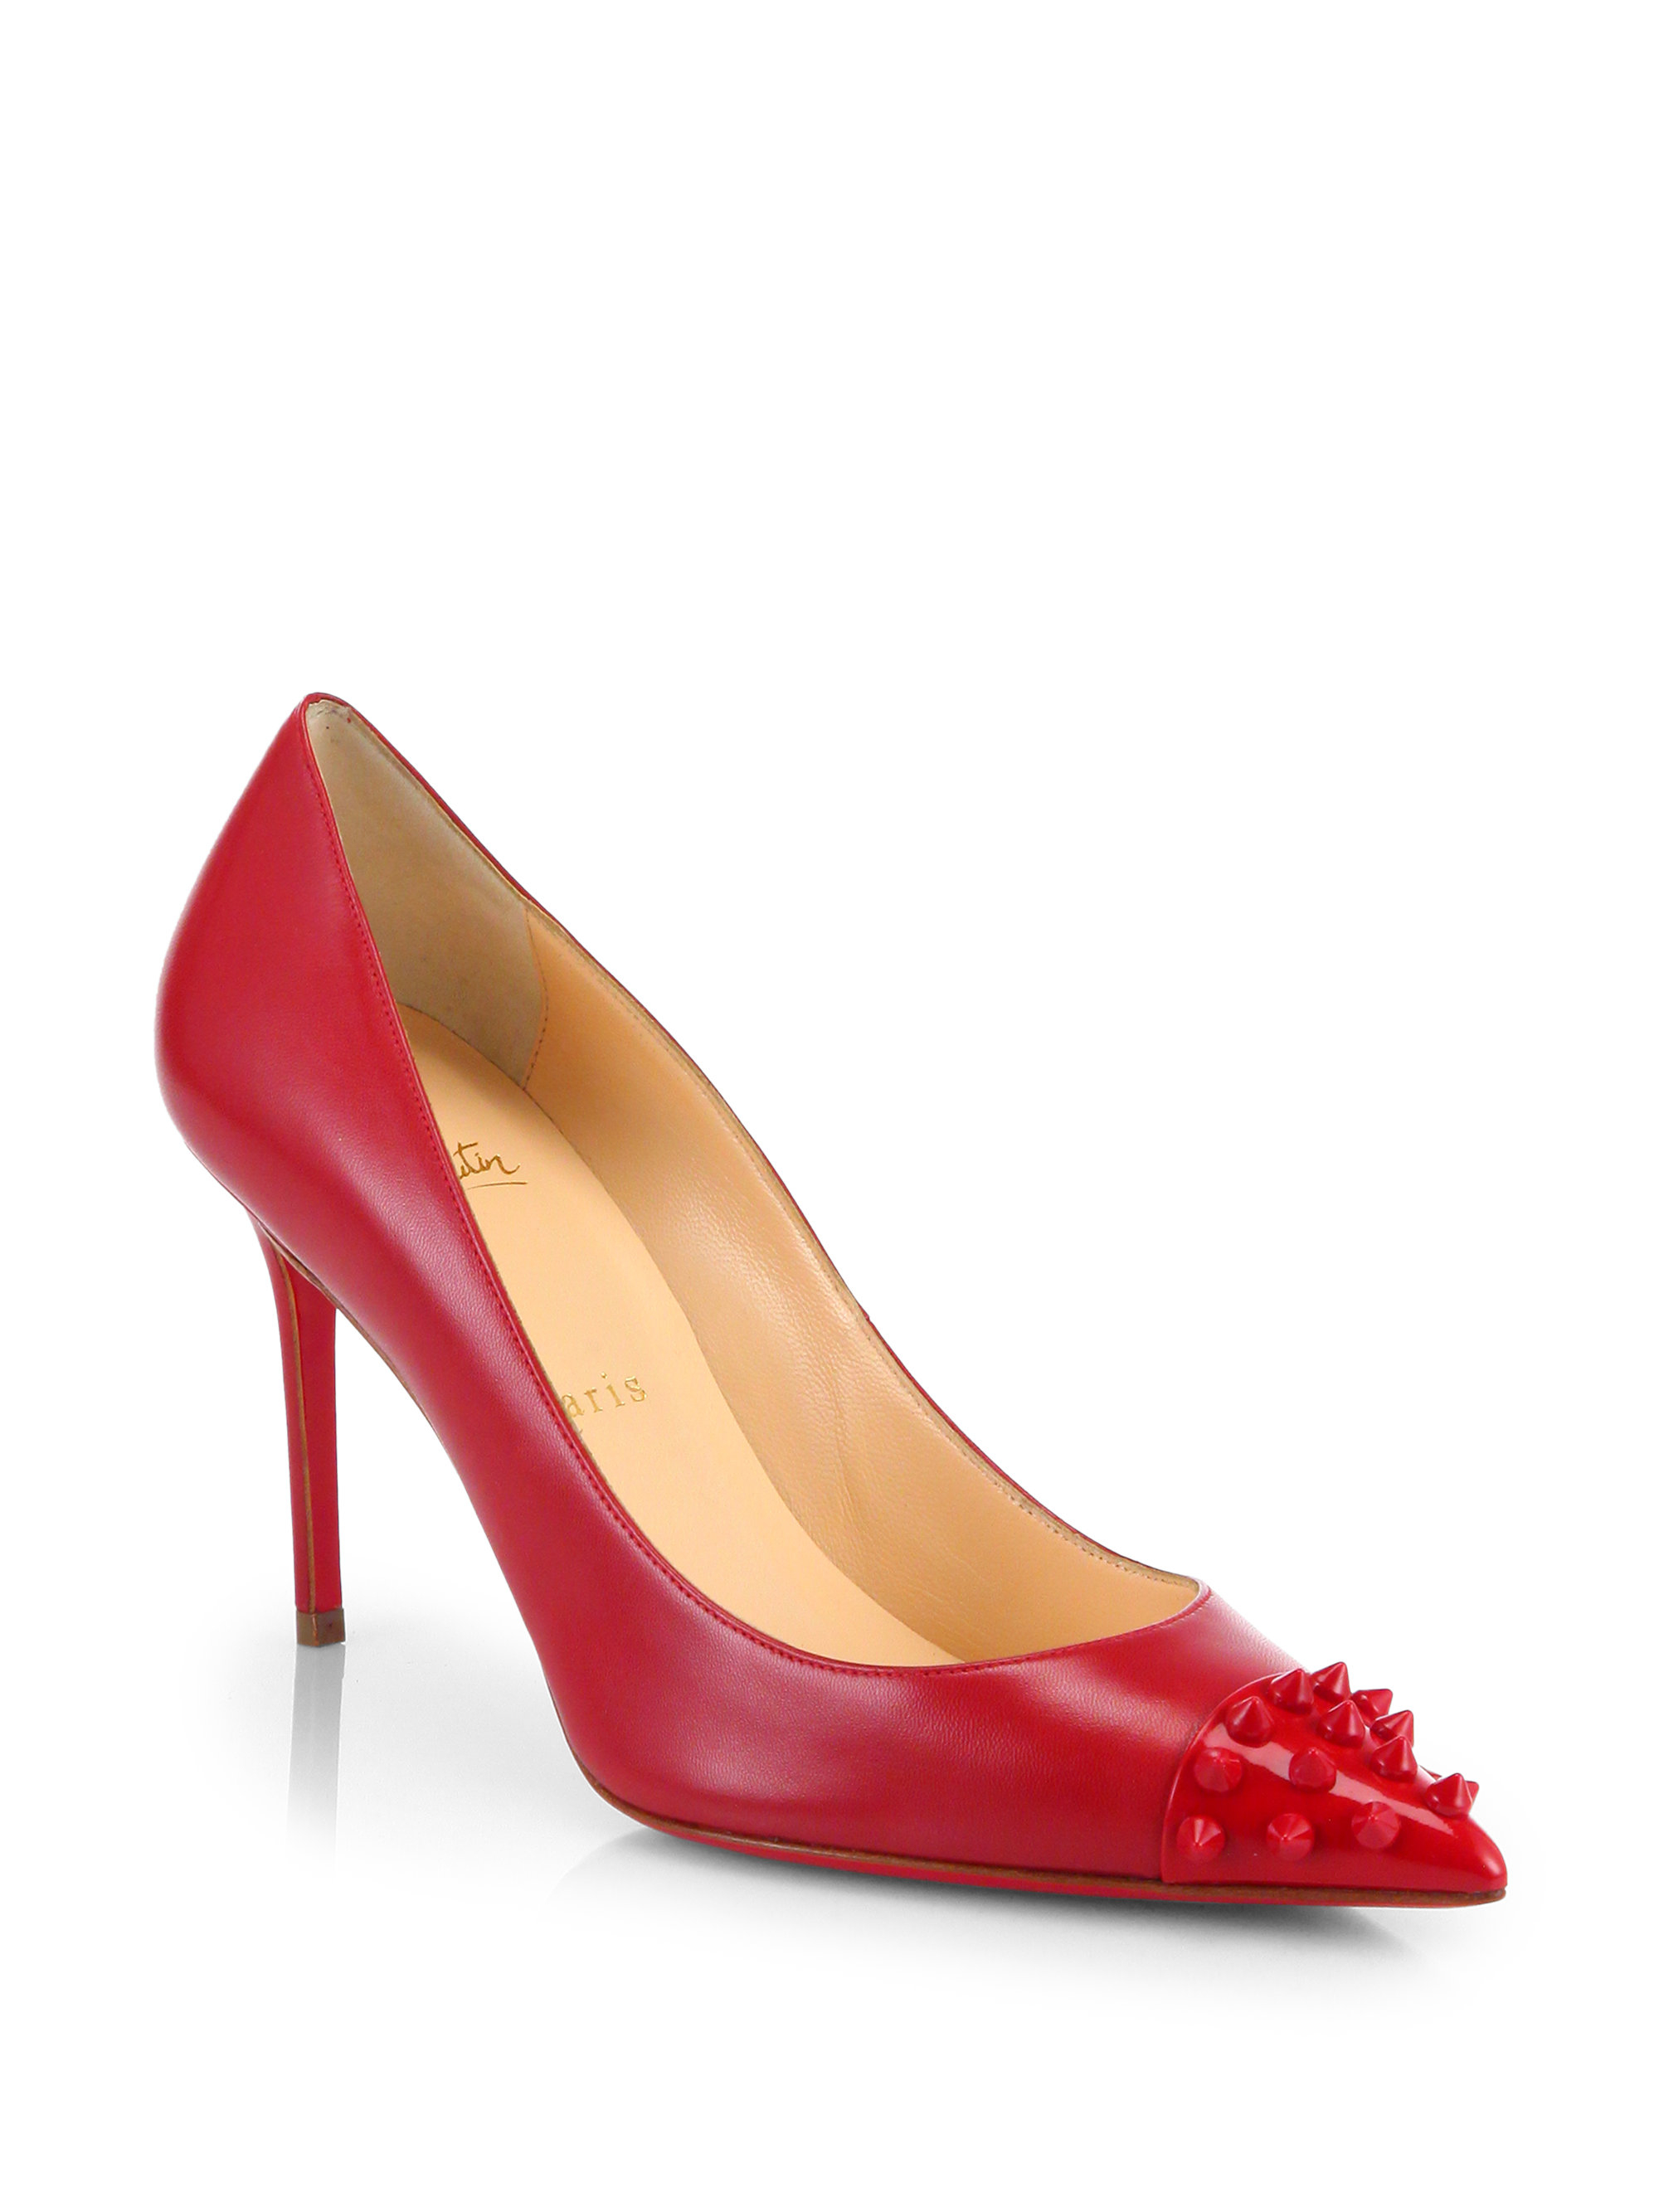 Christian louboutin Geo 85 Spiked Leather Pumps in Red | Lyst